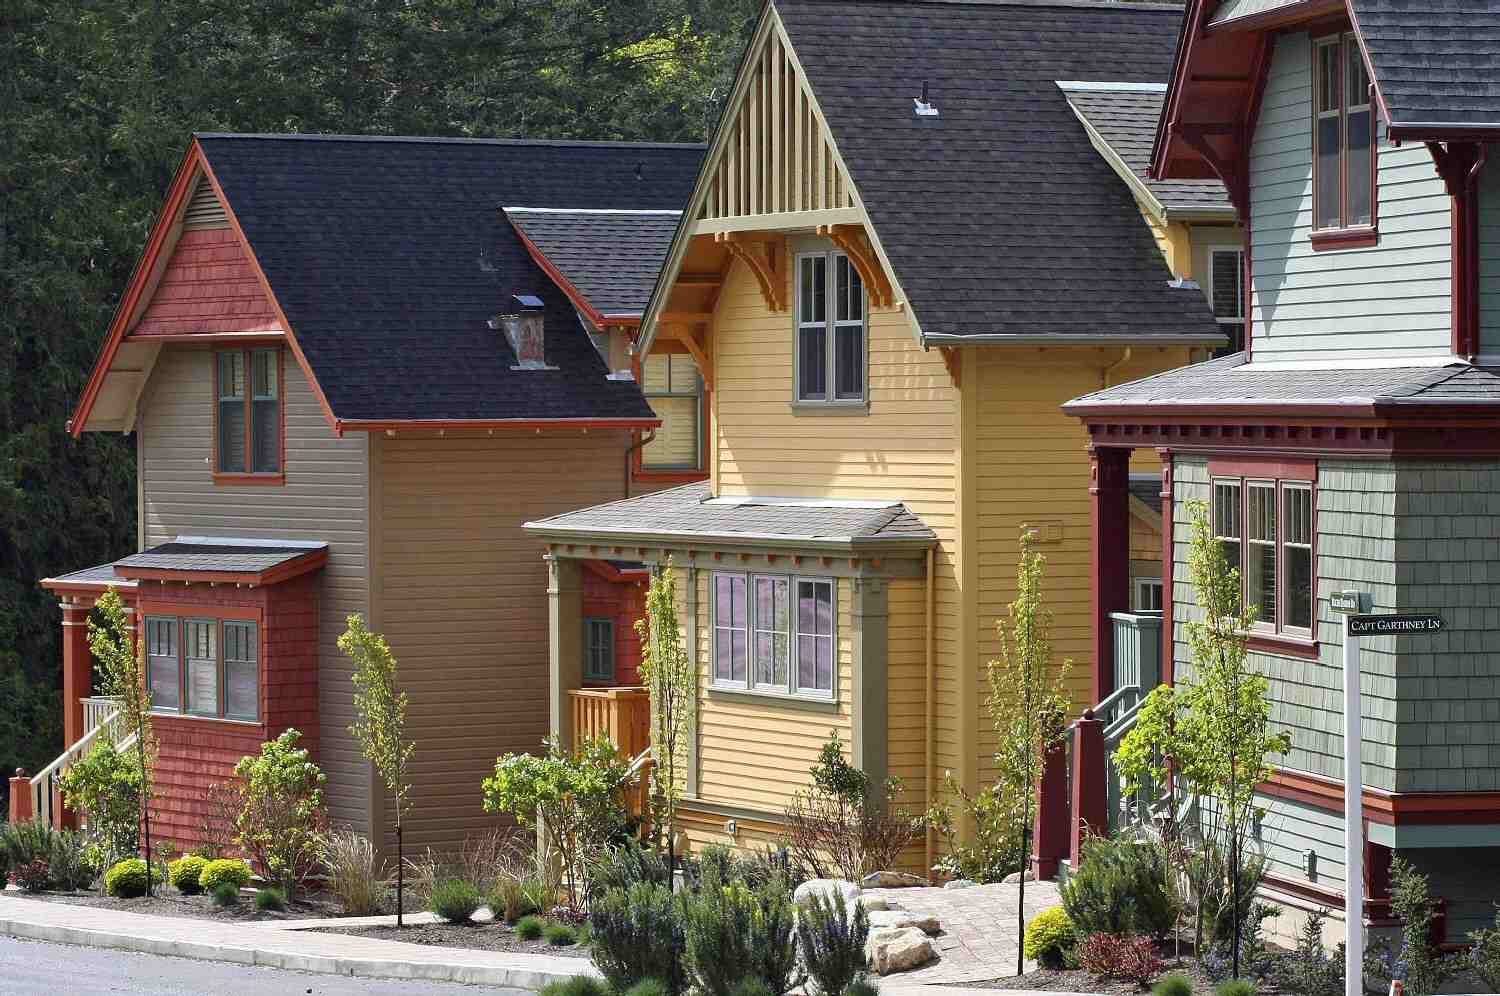 Three Colorful Cottages in a Seaside Village